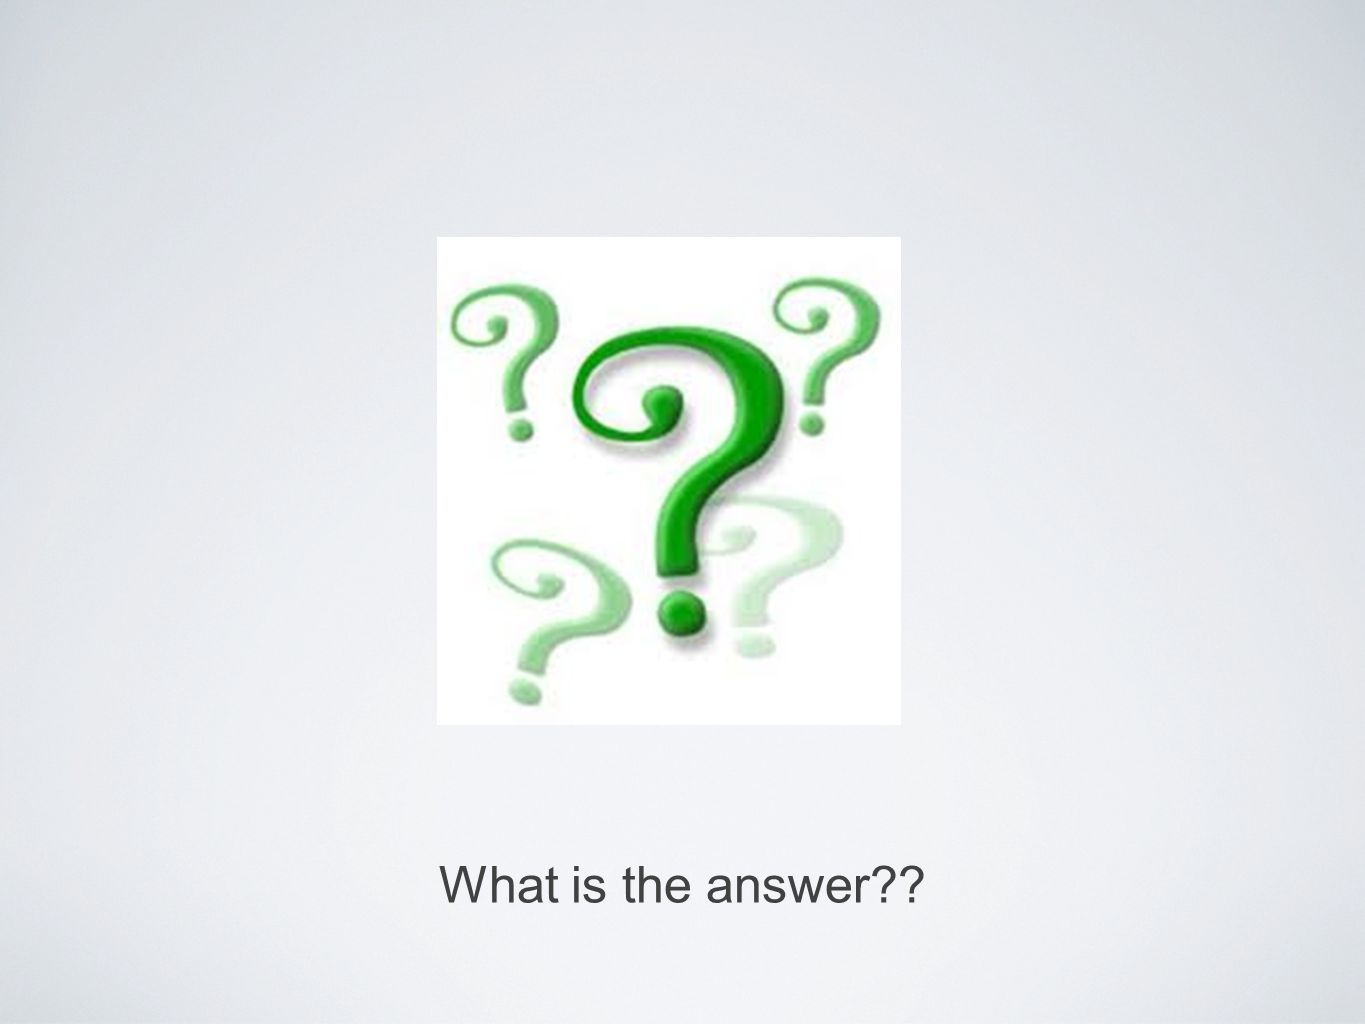 What is the answer??